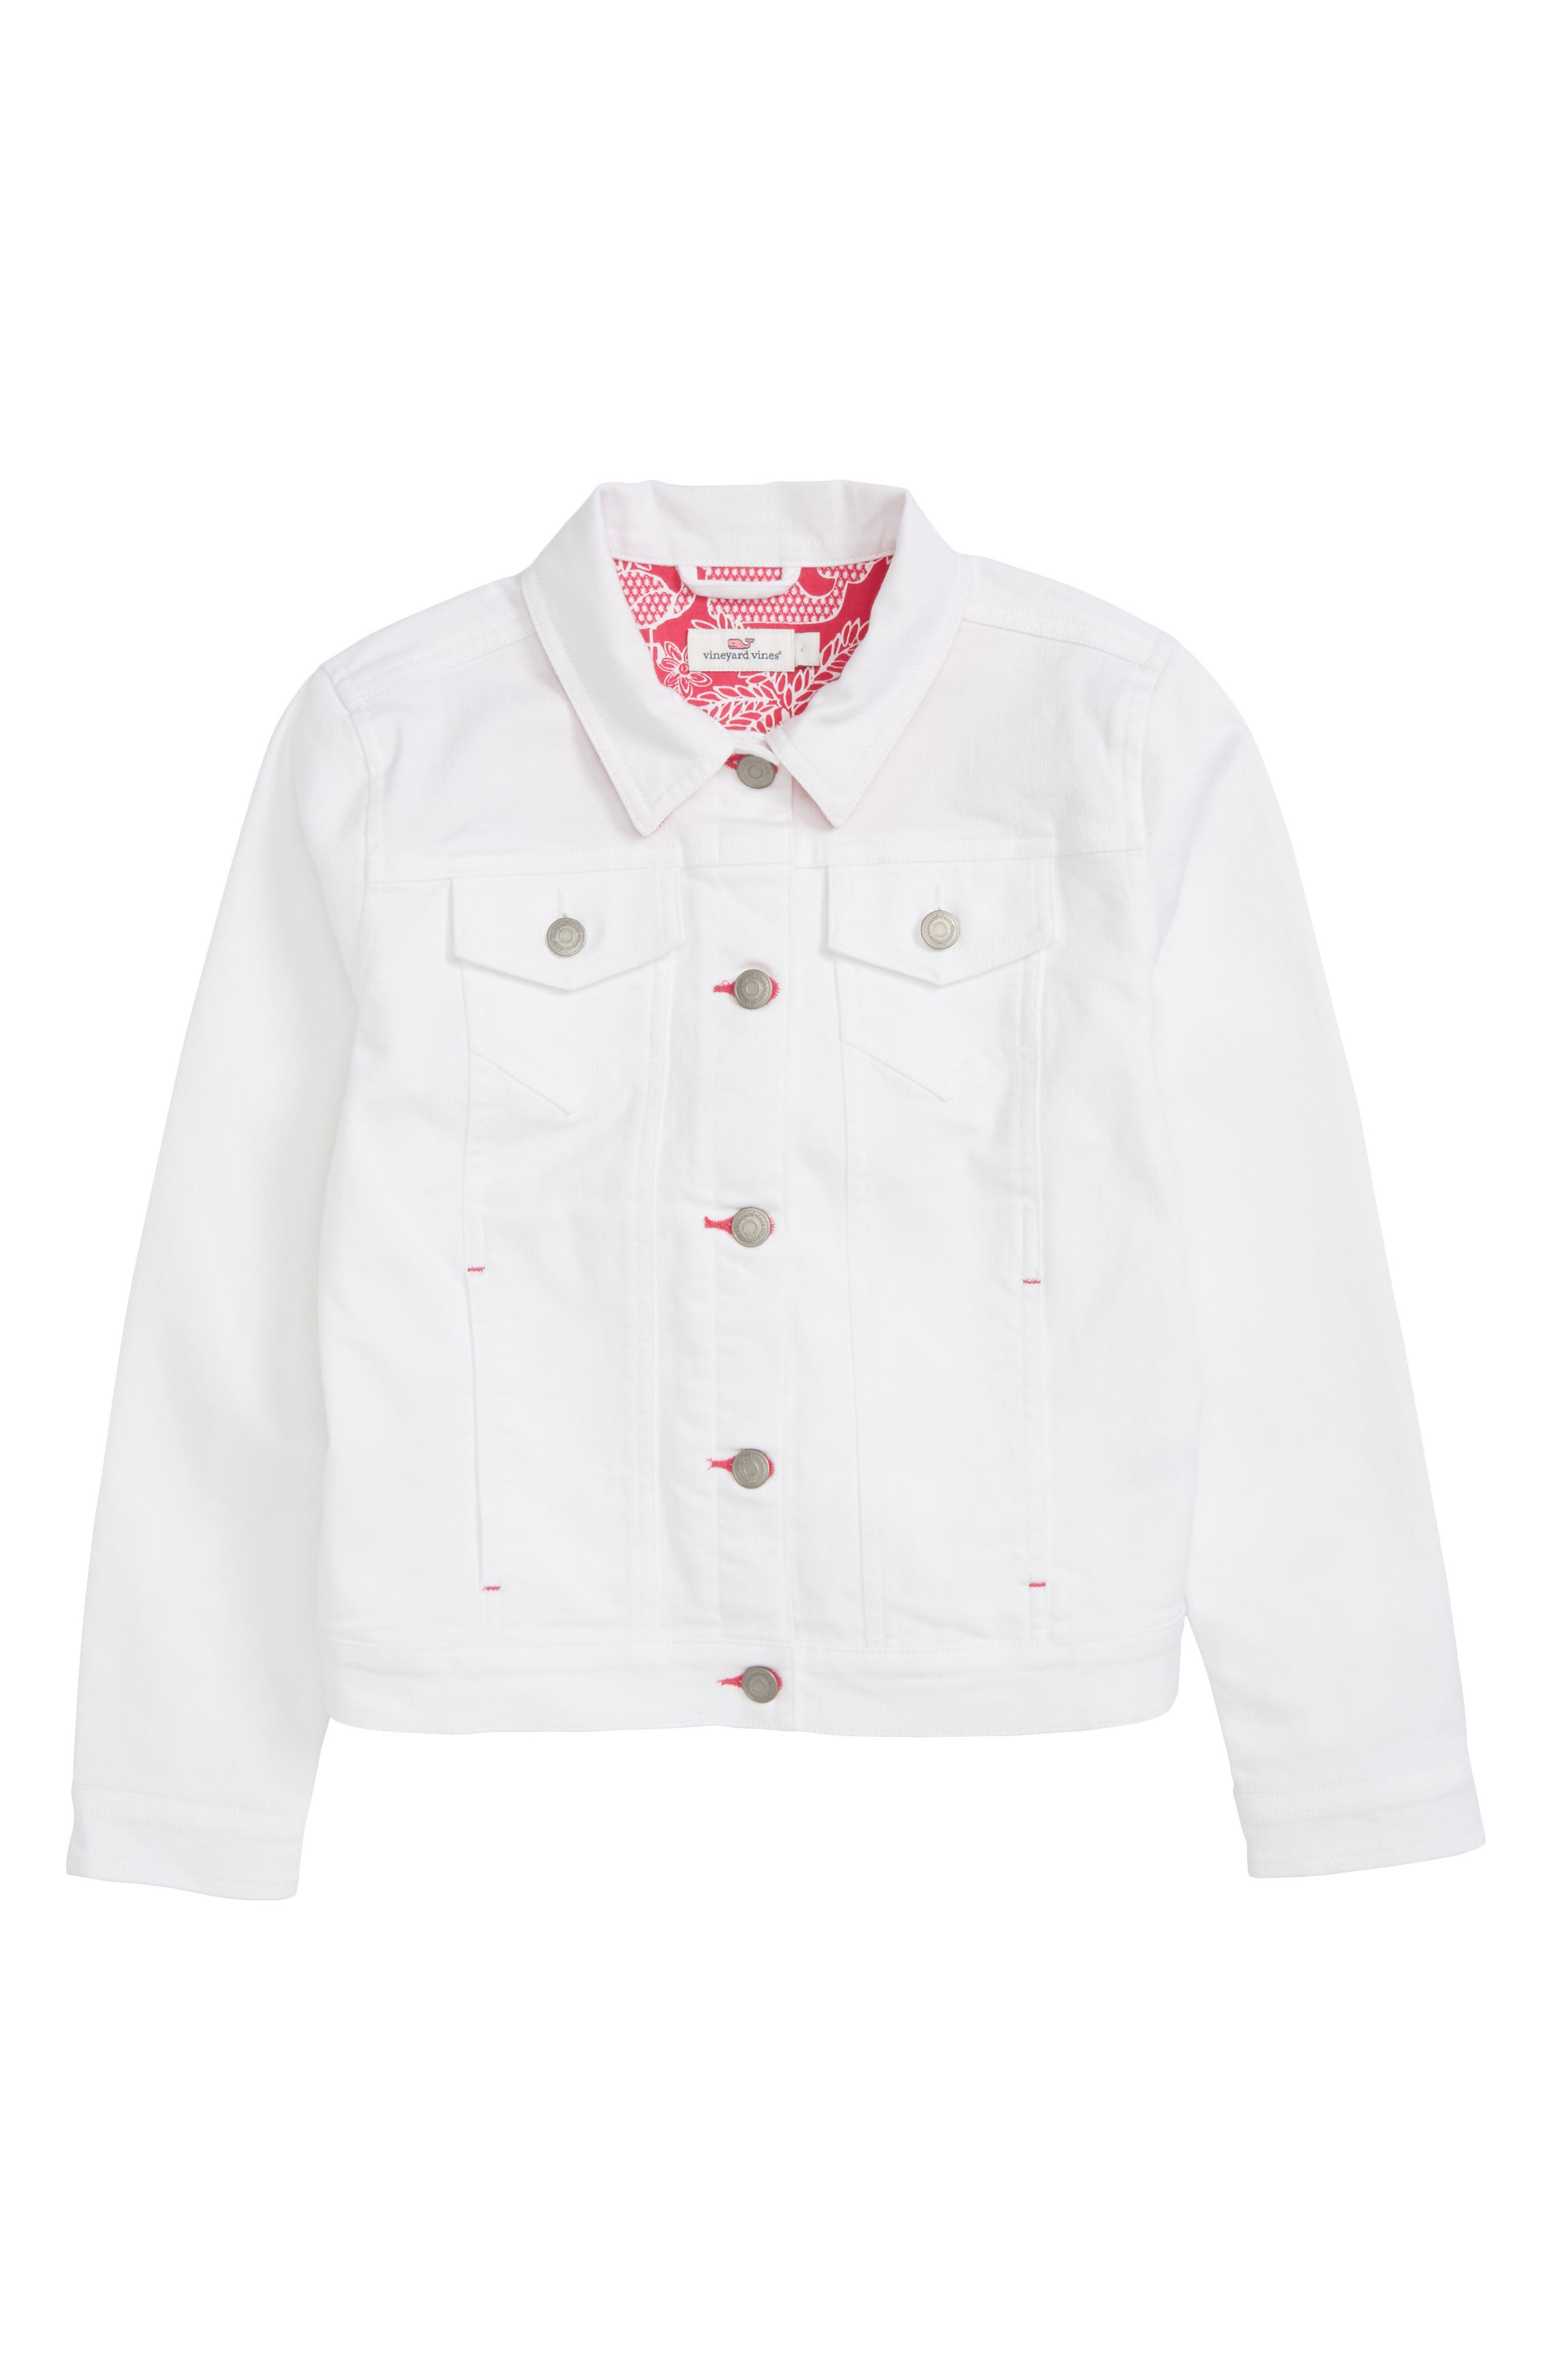 White Denim Jacket,                         Main,                         color, White Cap